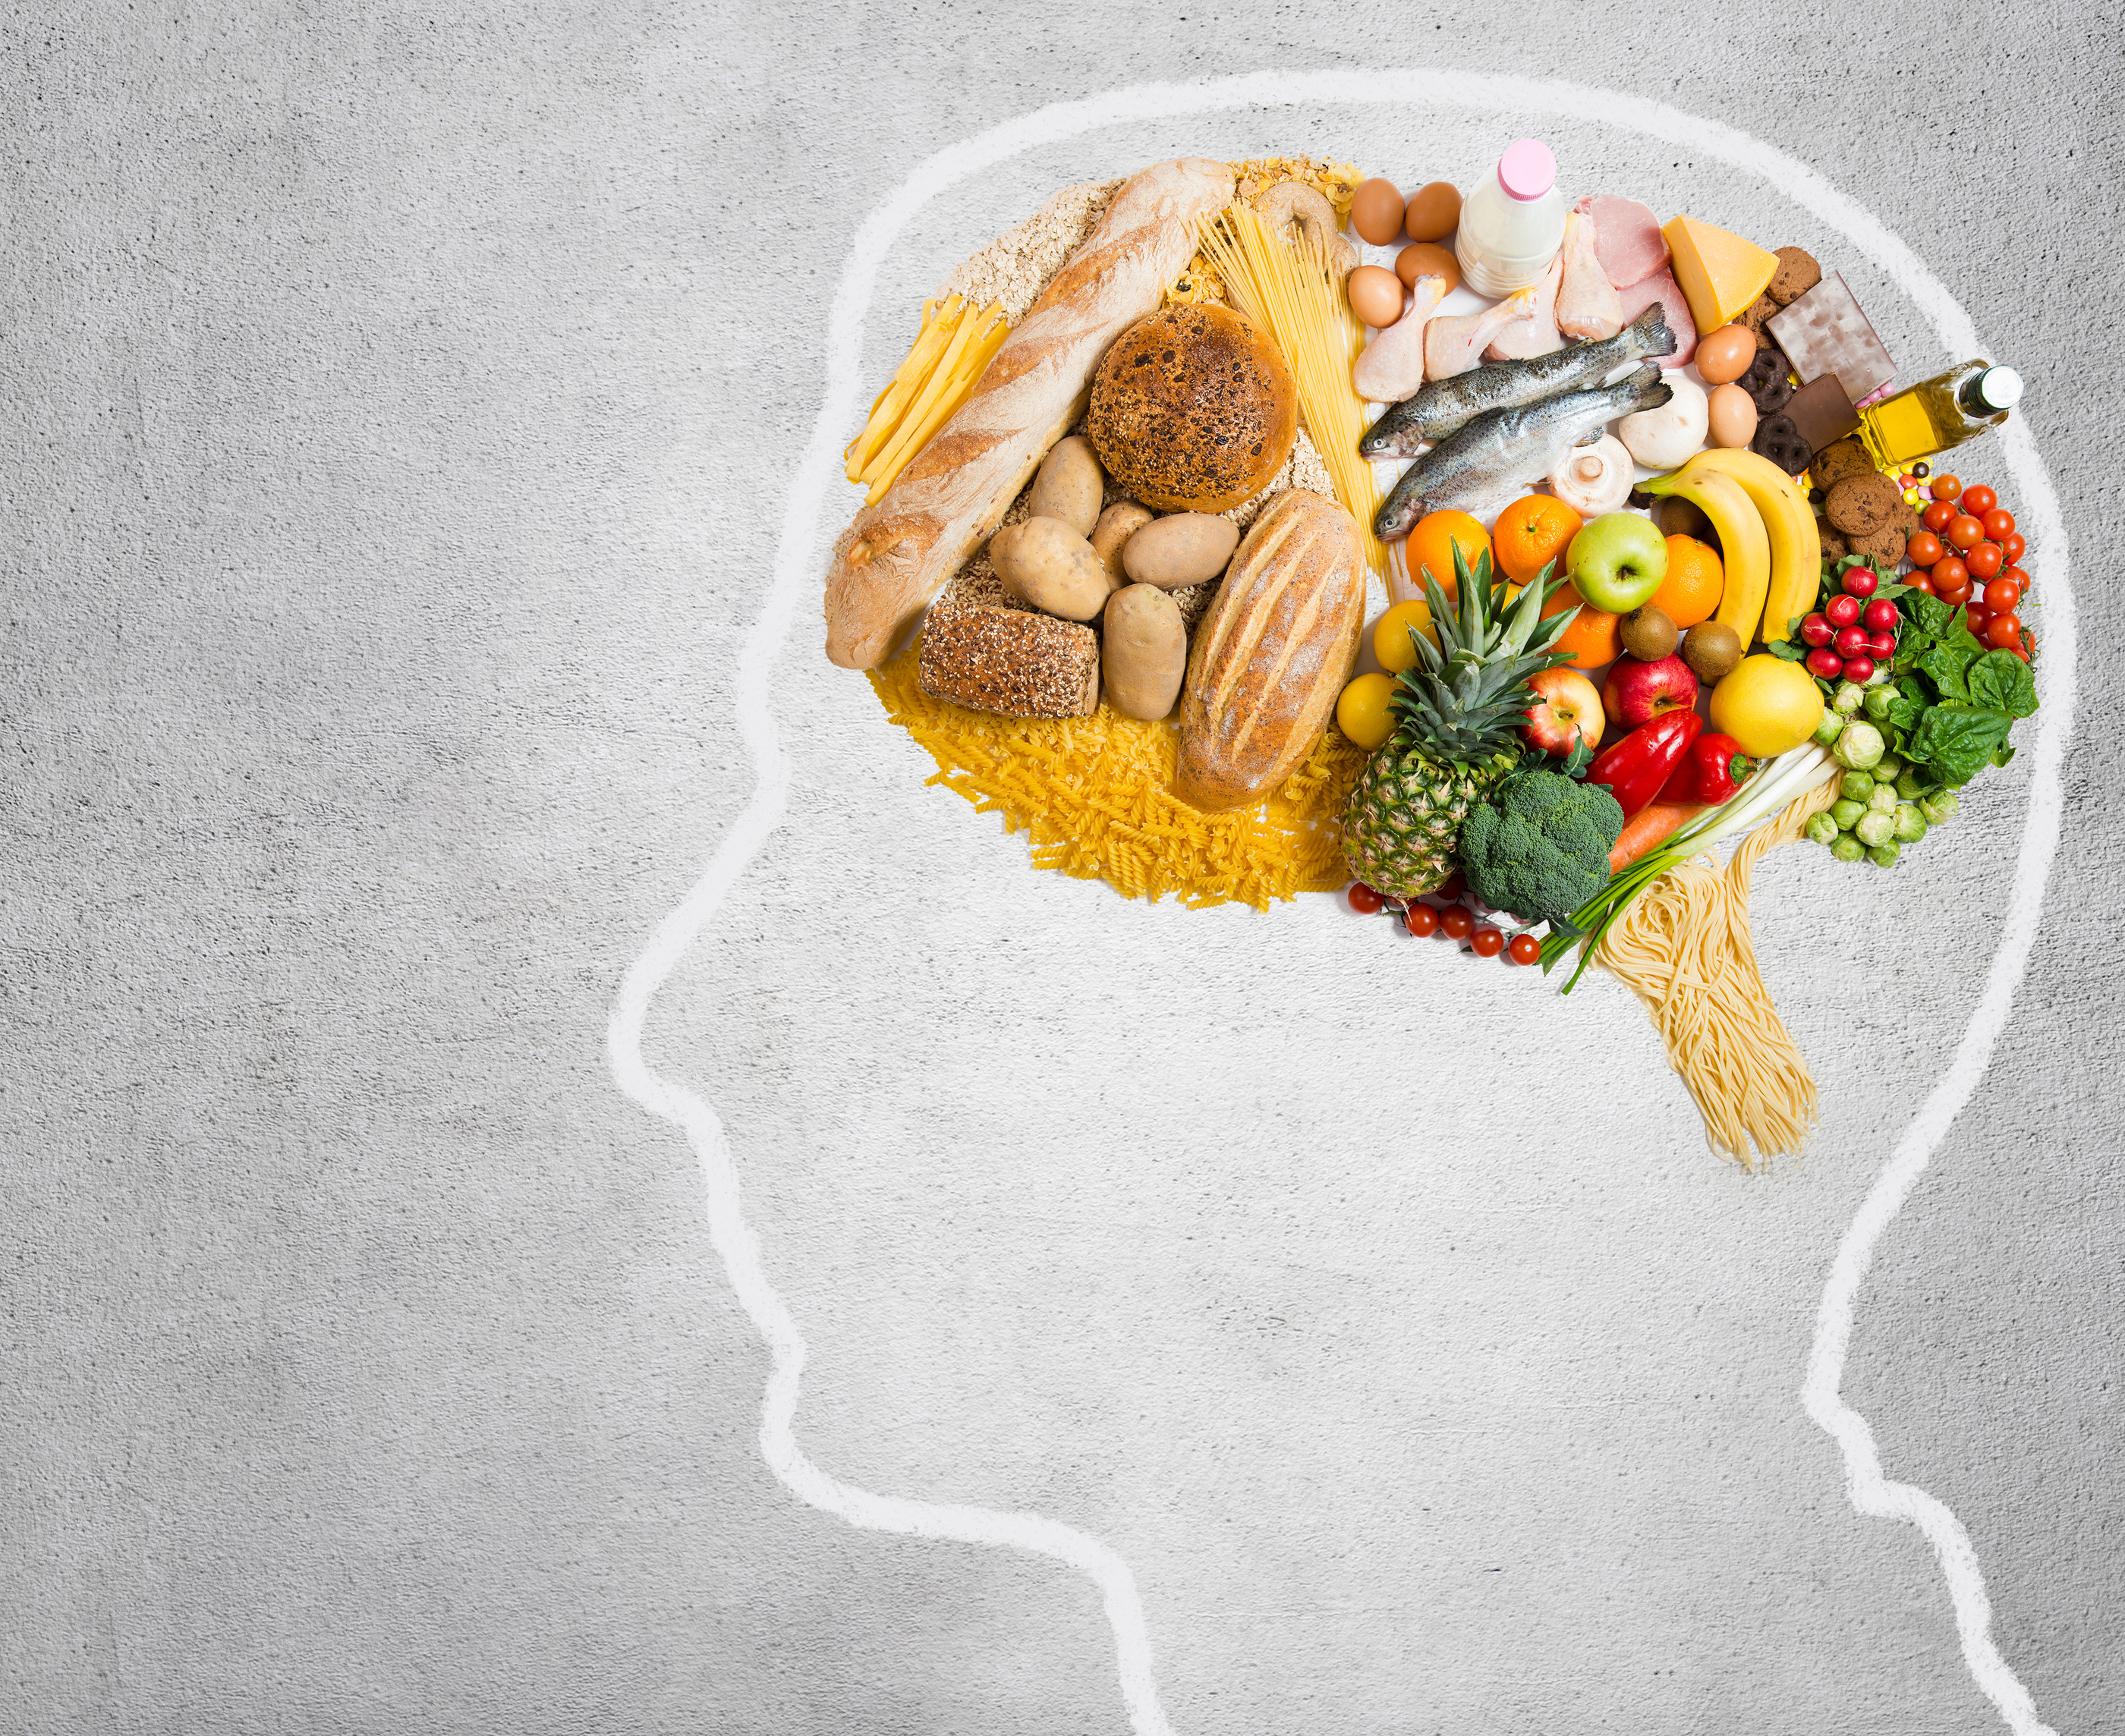 Feeding your brain for peak function